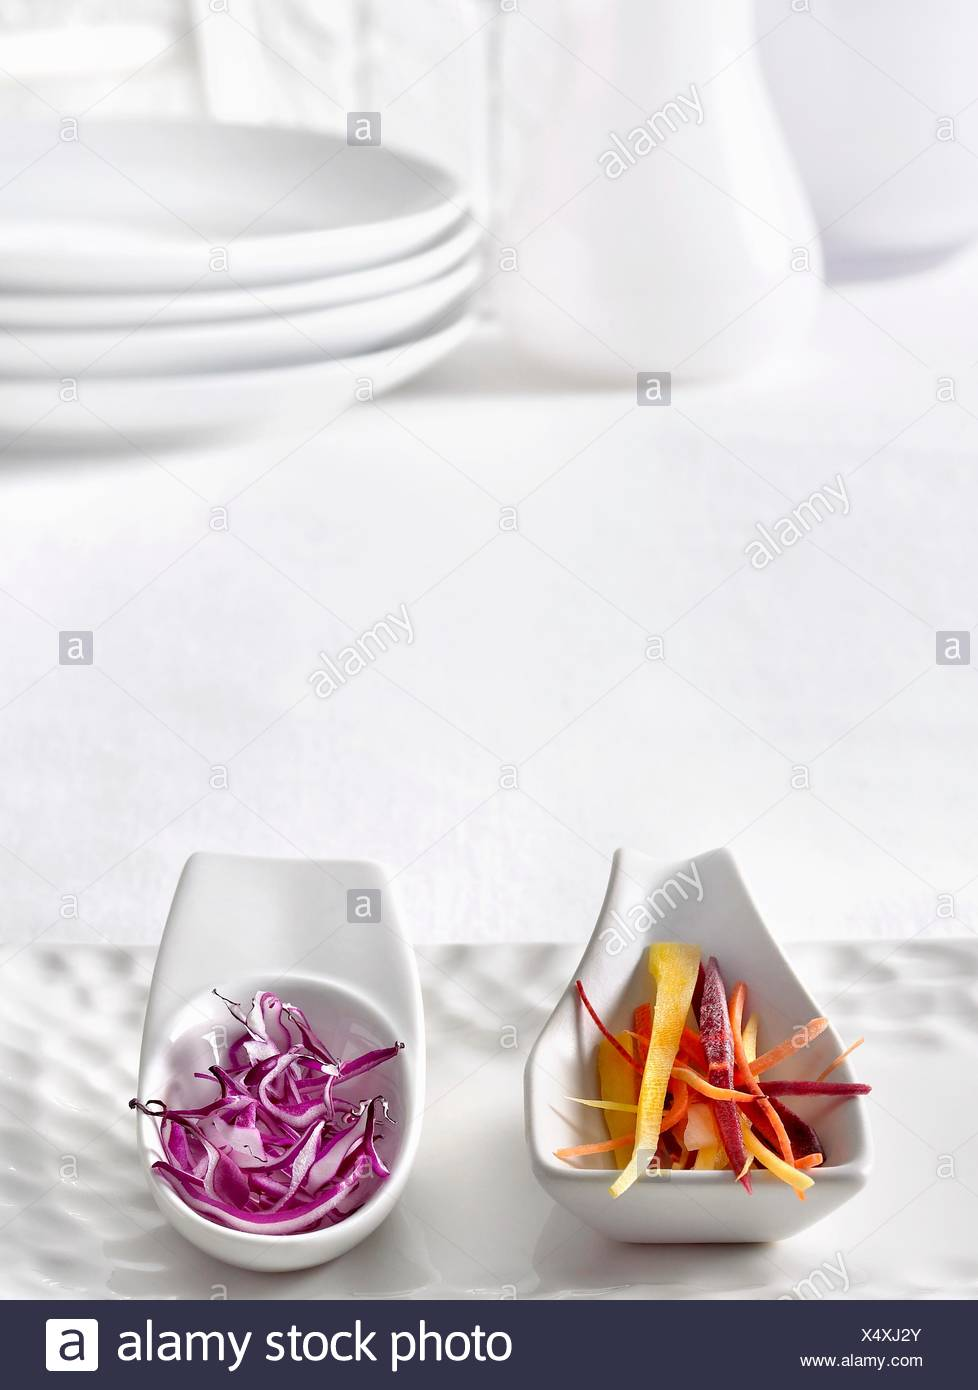 Julienned Organic Multi-Colored Heirloom Carrots and Red Cabbage on White Serving Spoons - Stock Image